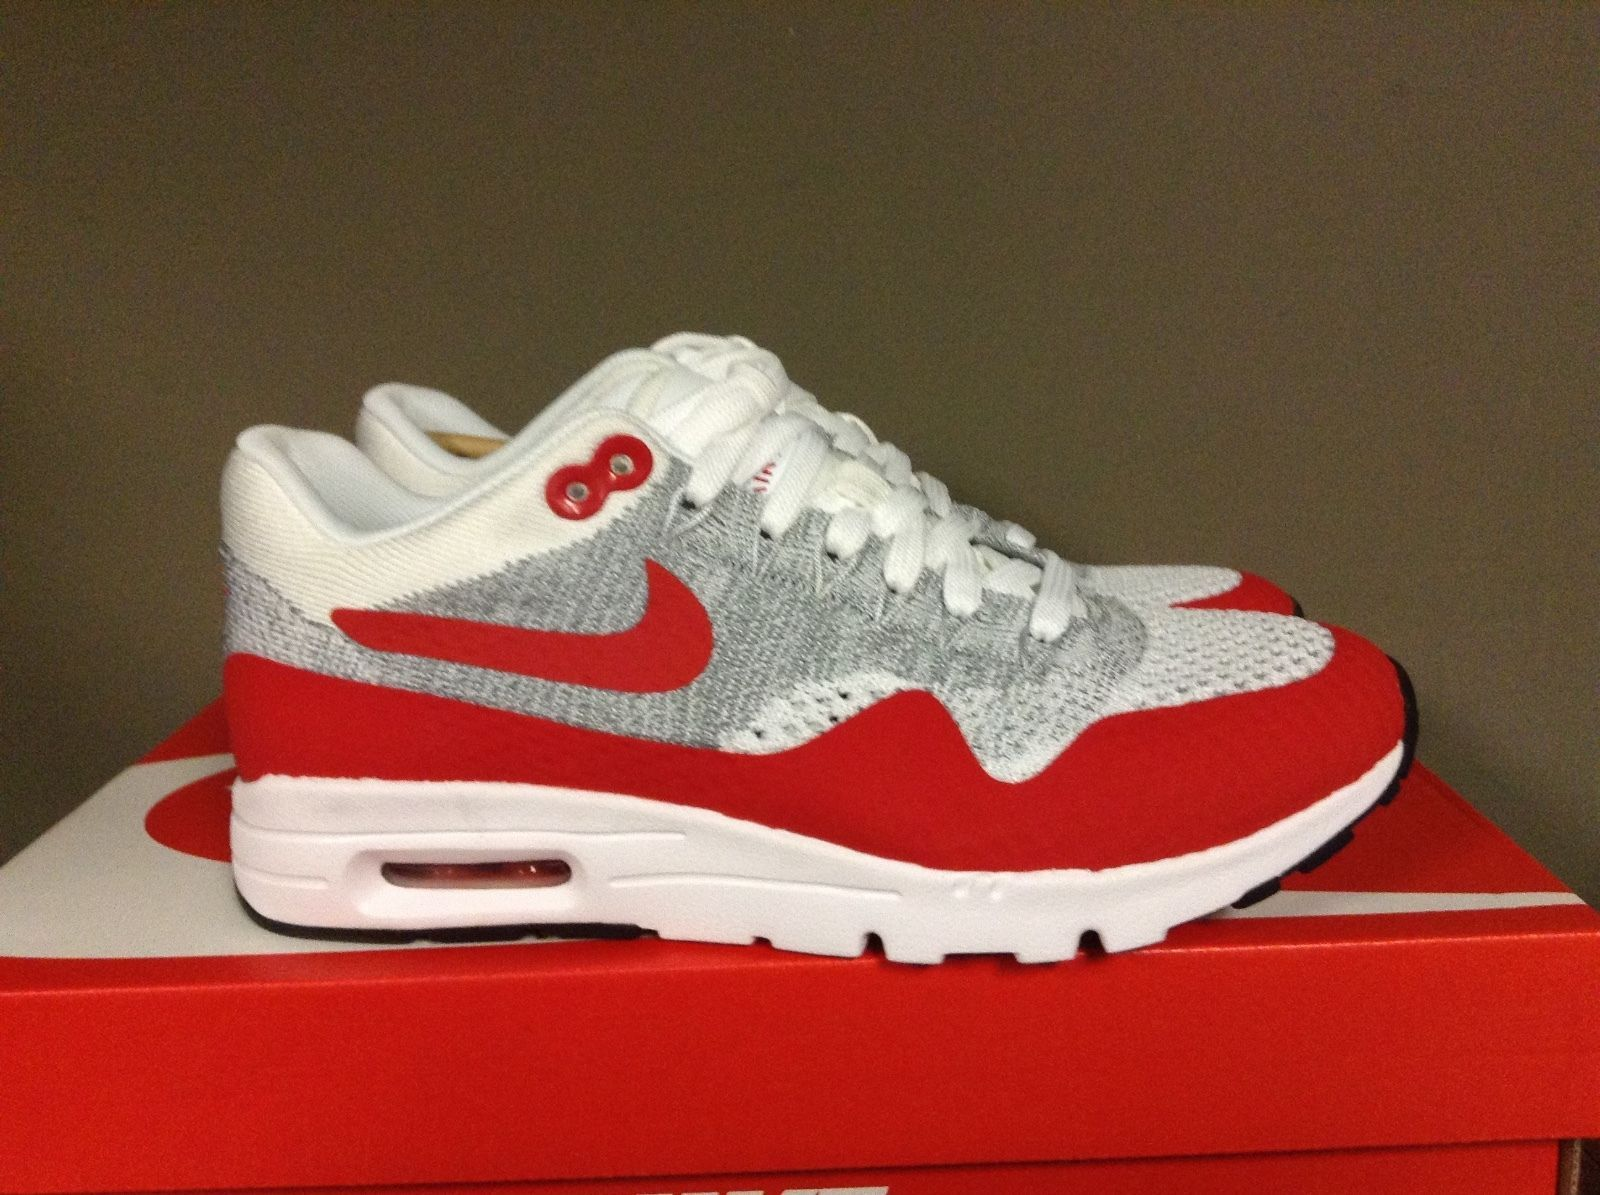 NIKE WOMENS AIR MAX 1 ULTRA FLYKNIT WHITE RED PURE PLAT 843387 101 ... 65a865afd